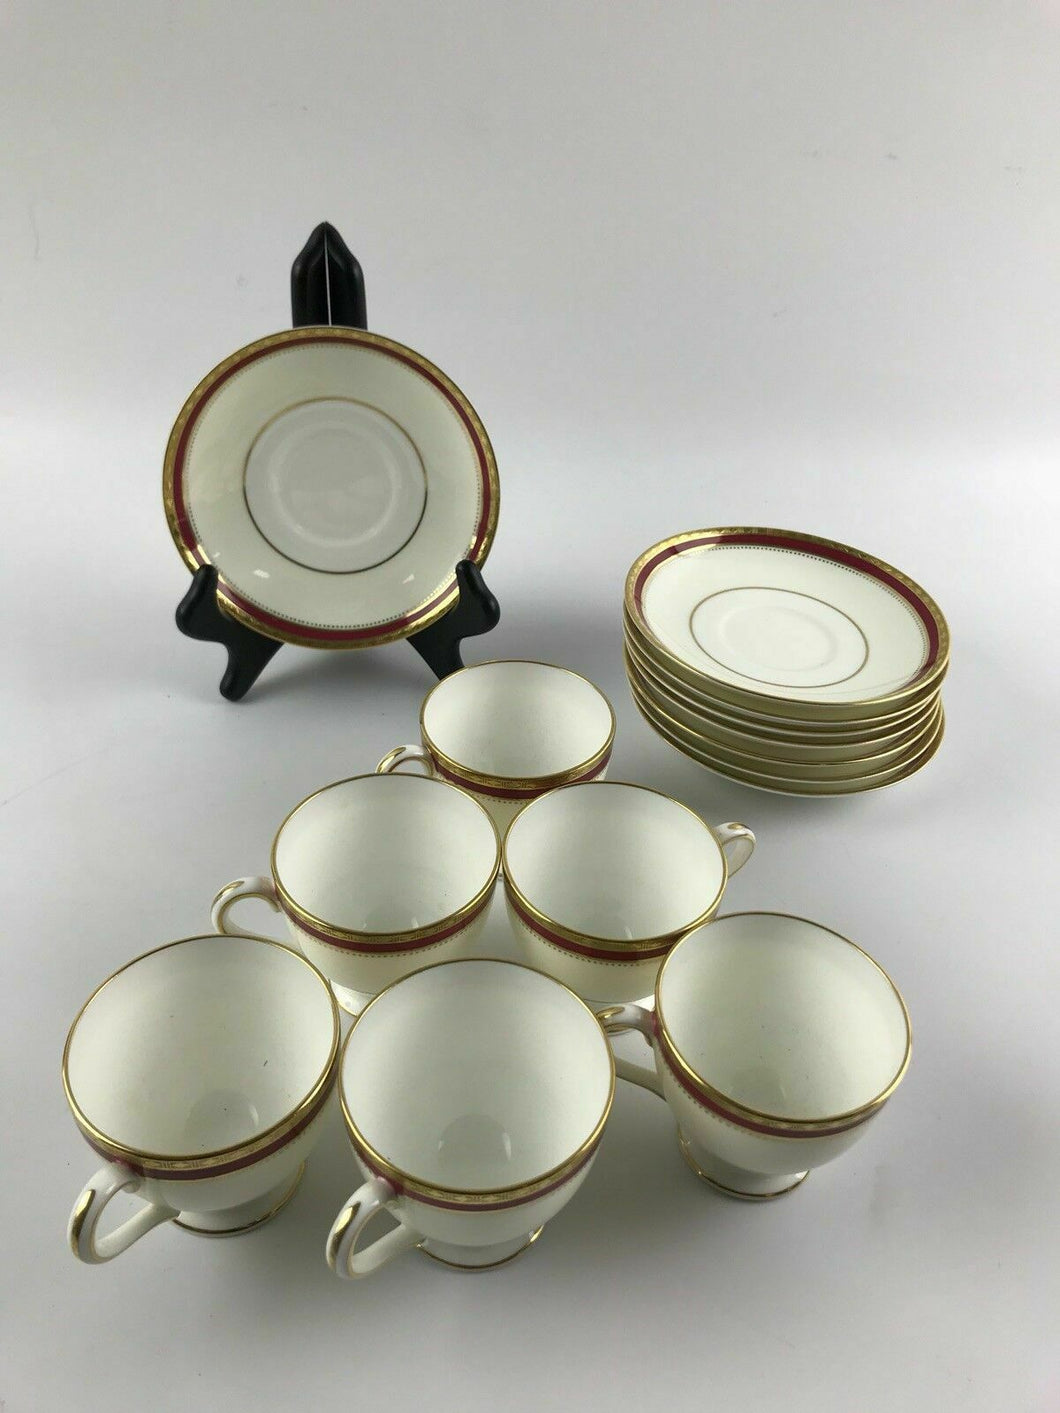 14pc Minton Bone China Cups & Saucers - lot 1294